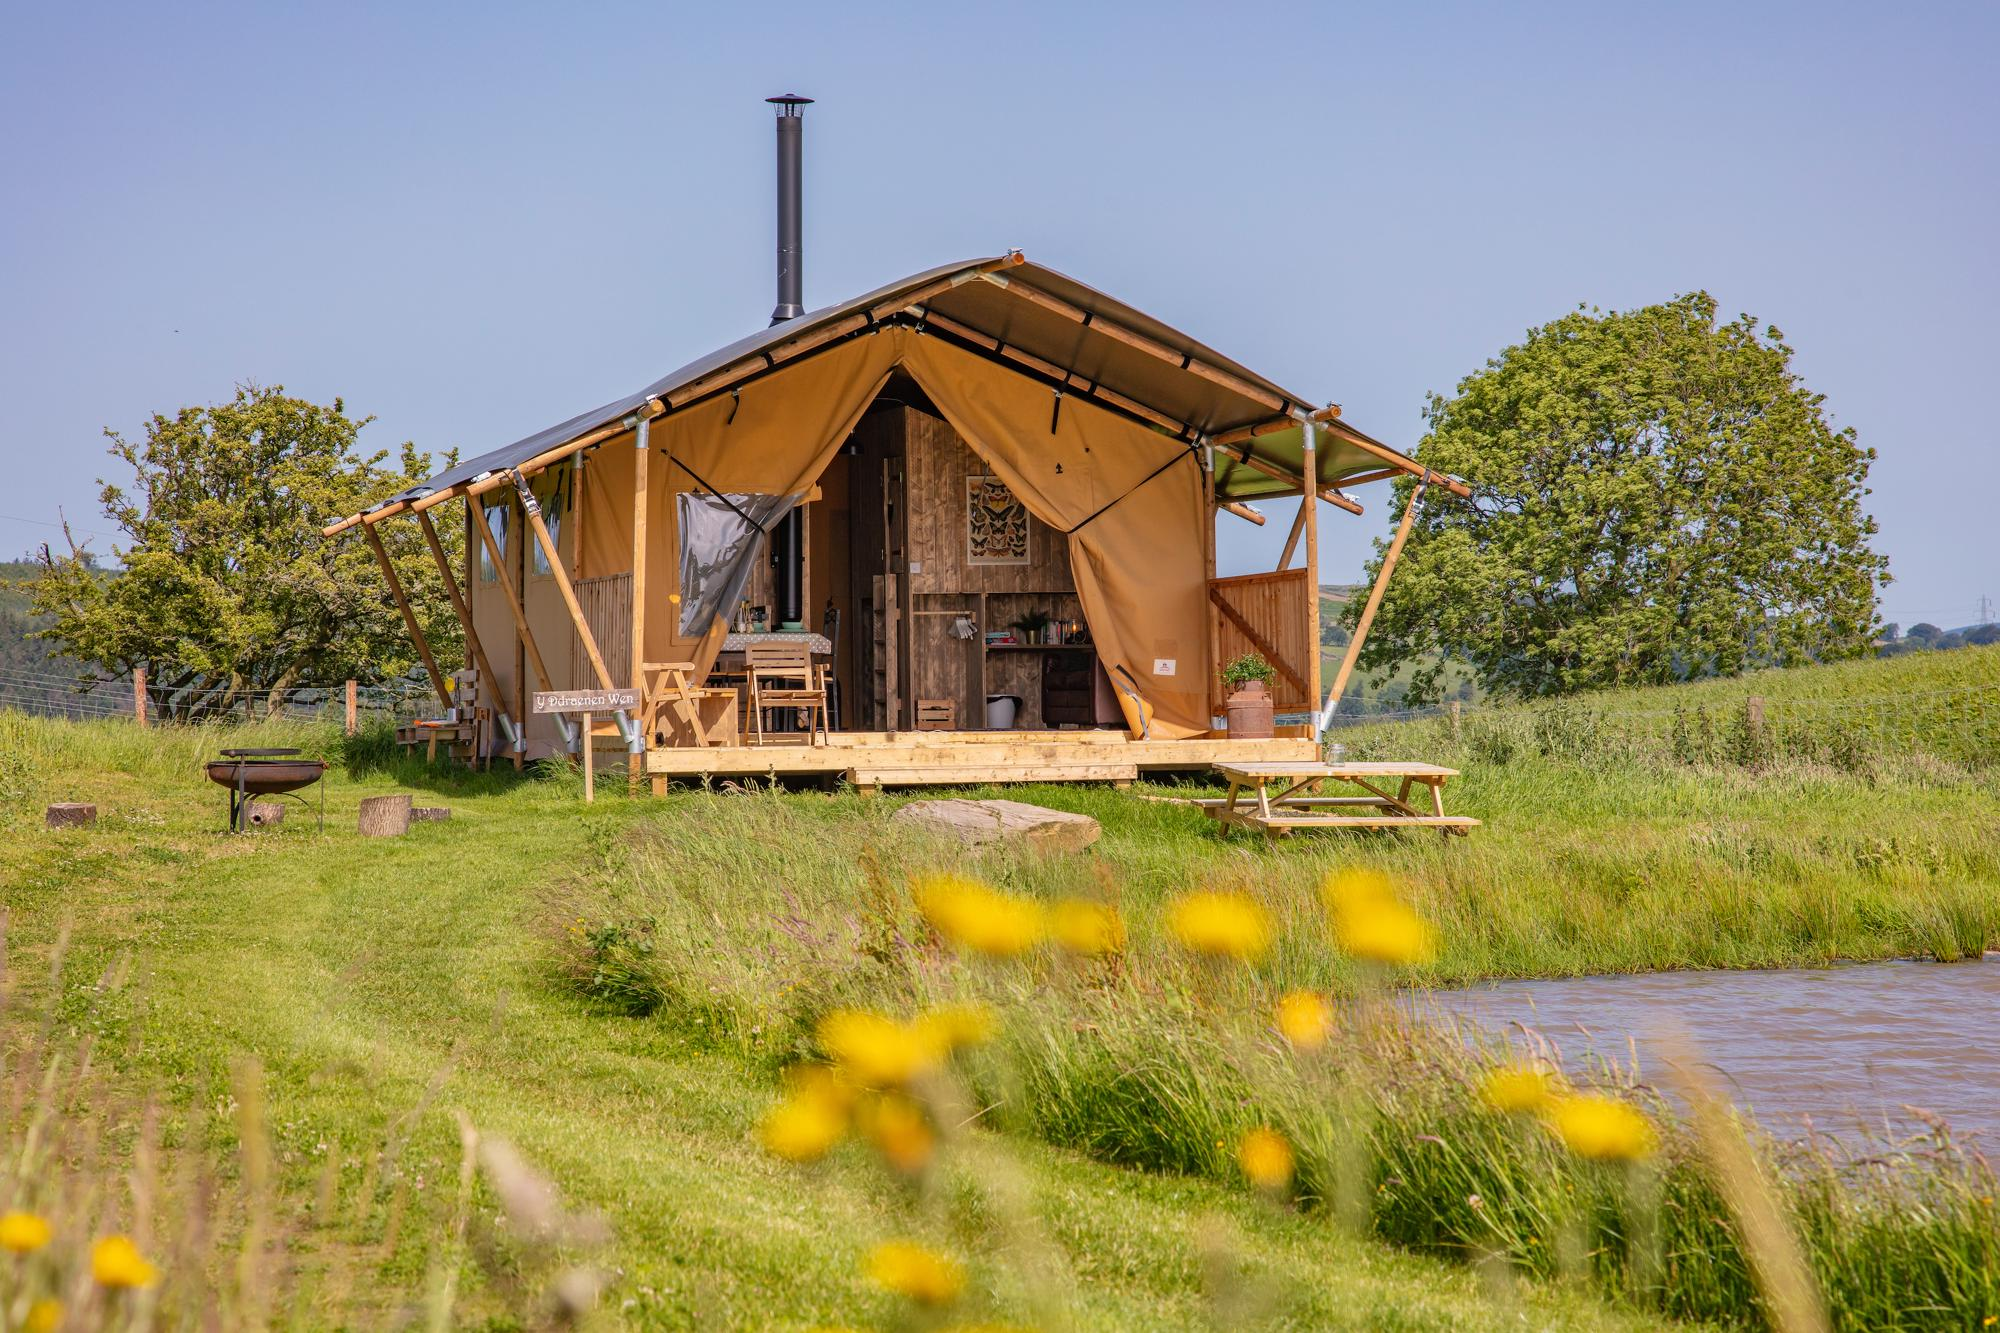 Glamping in Caerphilly holidays at Glampingly